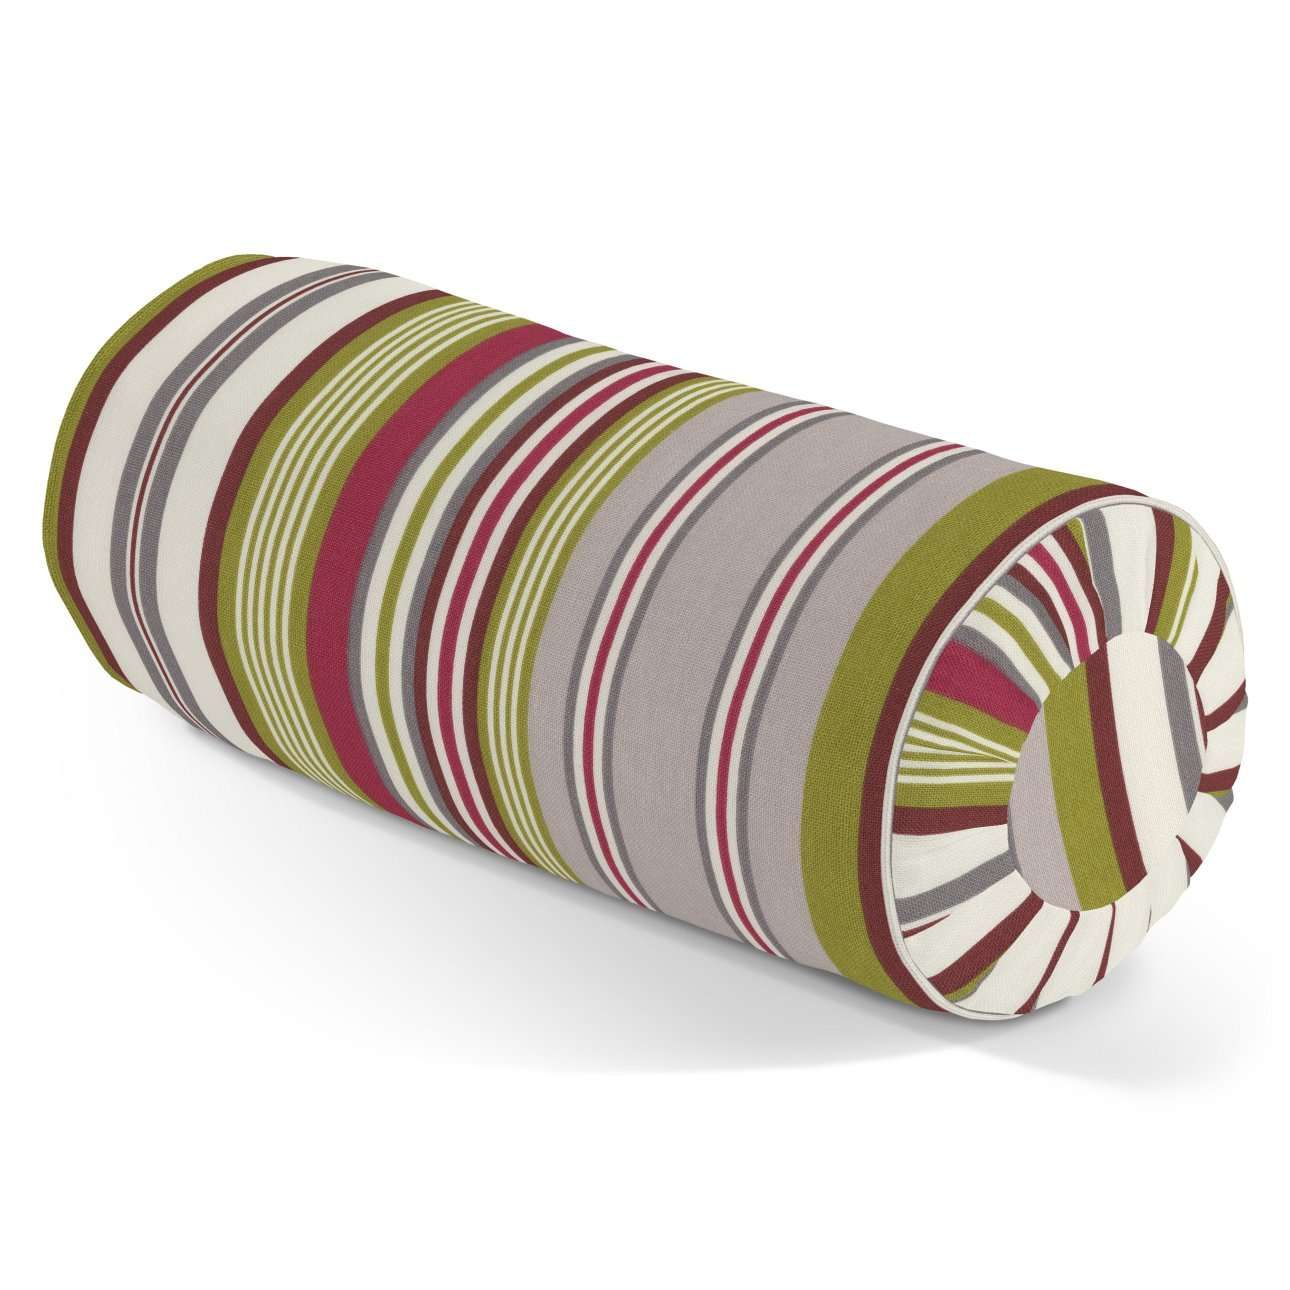 Bolster cushion with pleats in collection Flowers, fabric: 311-16